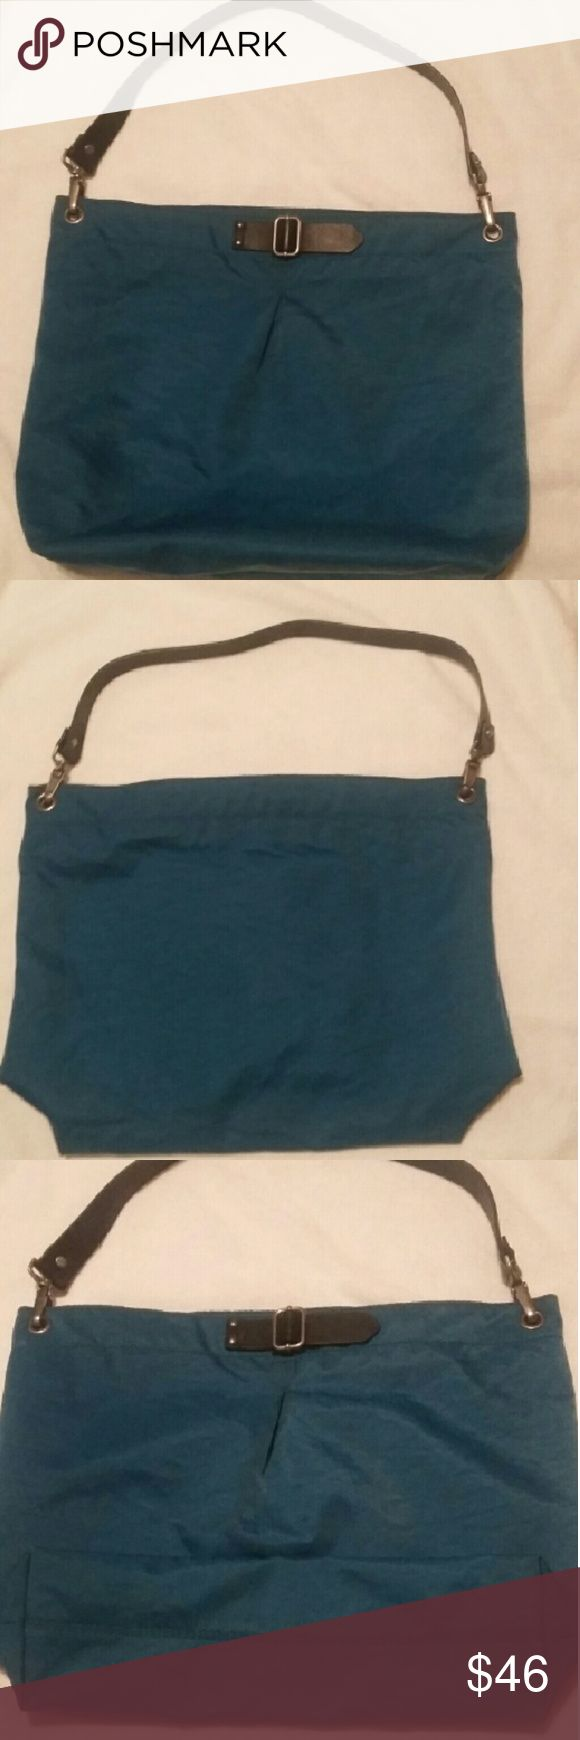 Banana Republic tote bags Teal blue Banana Republic canvas tote bag. It has leather handles and silver Hardware. This bag wasn't carried a lot and is in almost new condition. Banana Republic Bags Totes